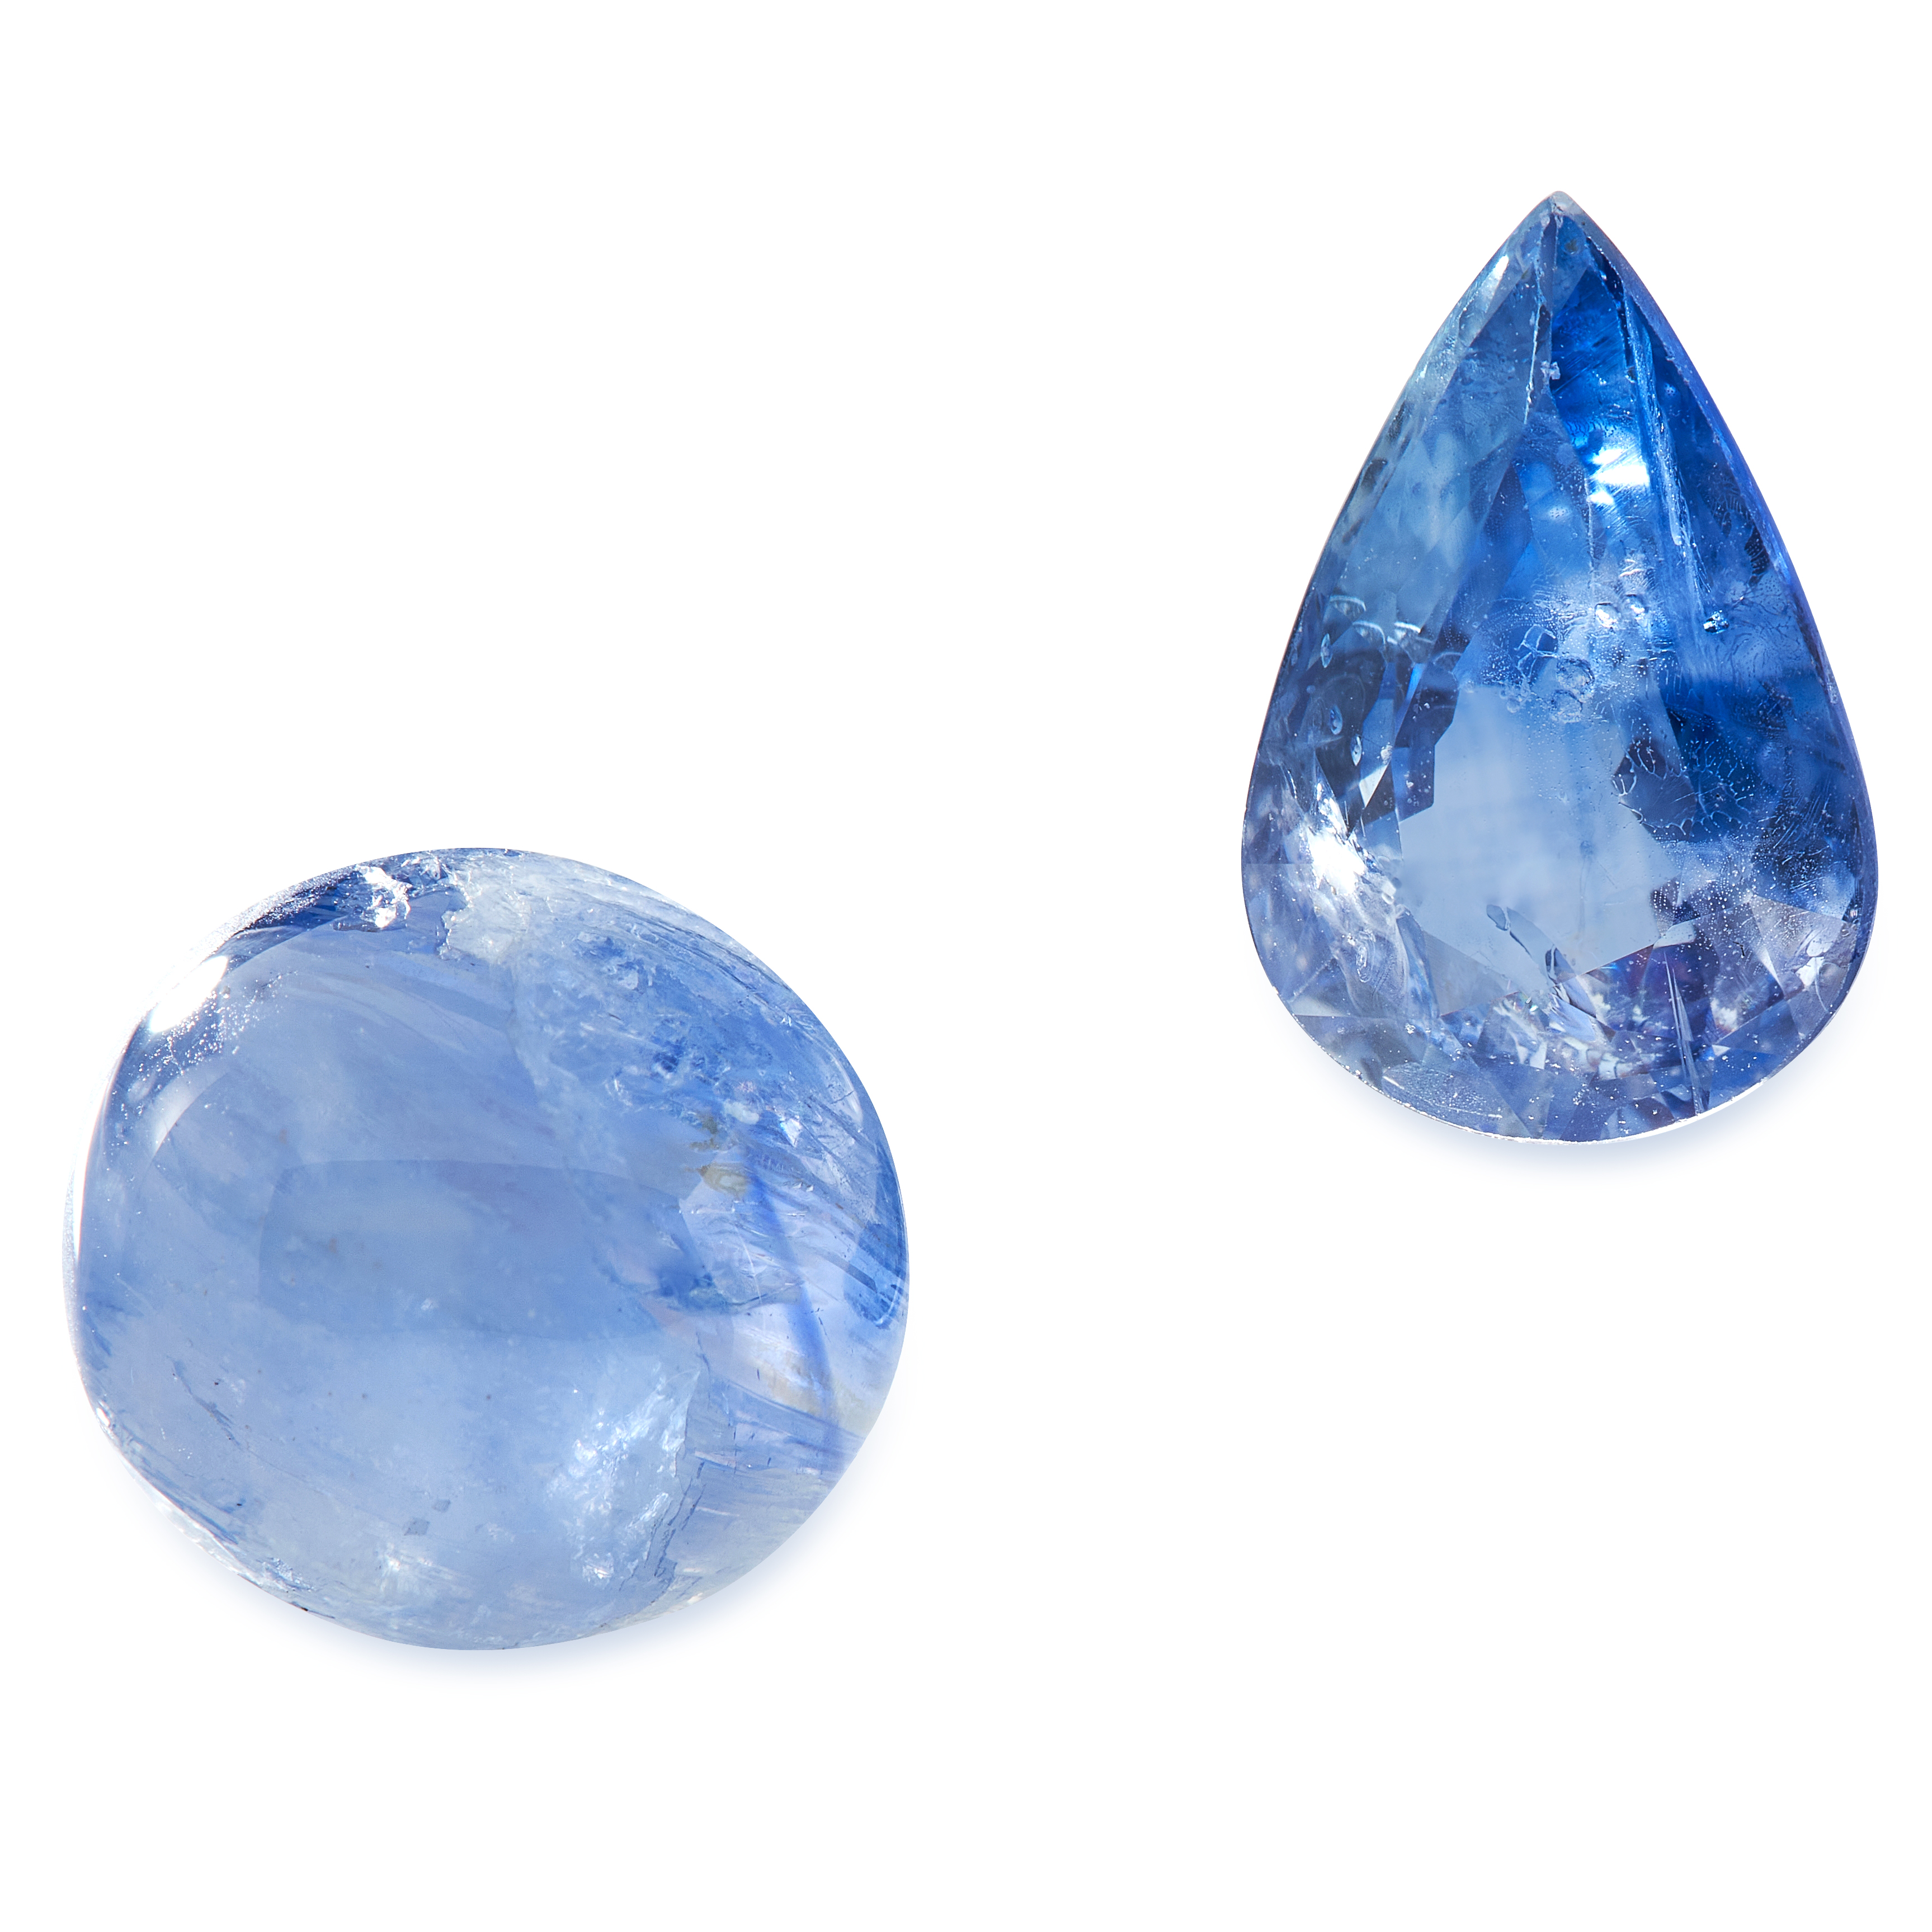 TWO UNMOUNTED TANZANITE one pear cut, one cabochon, totalling 7.30 carats.